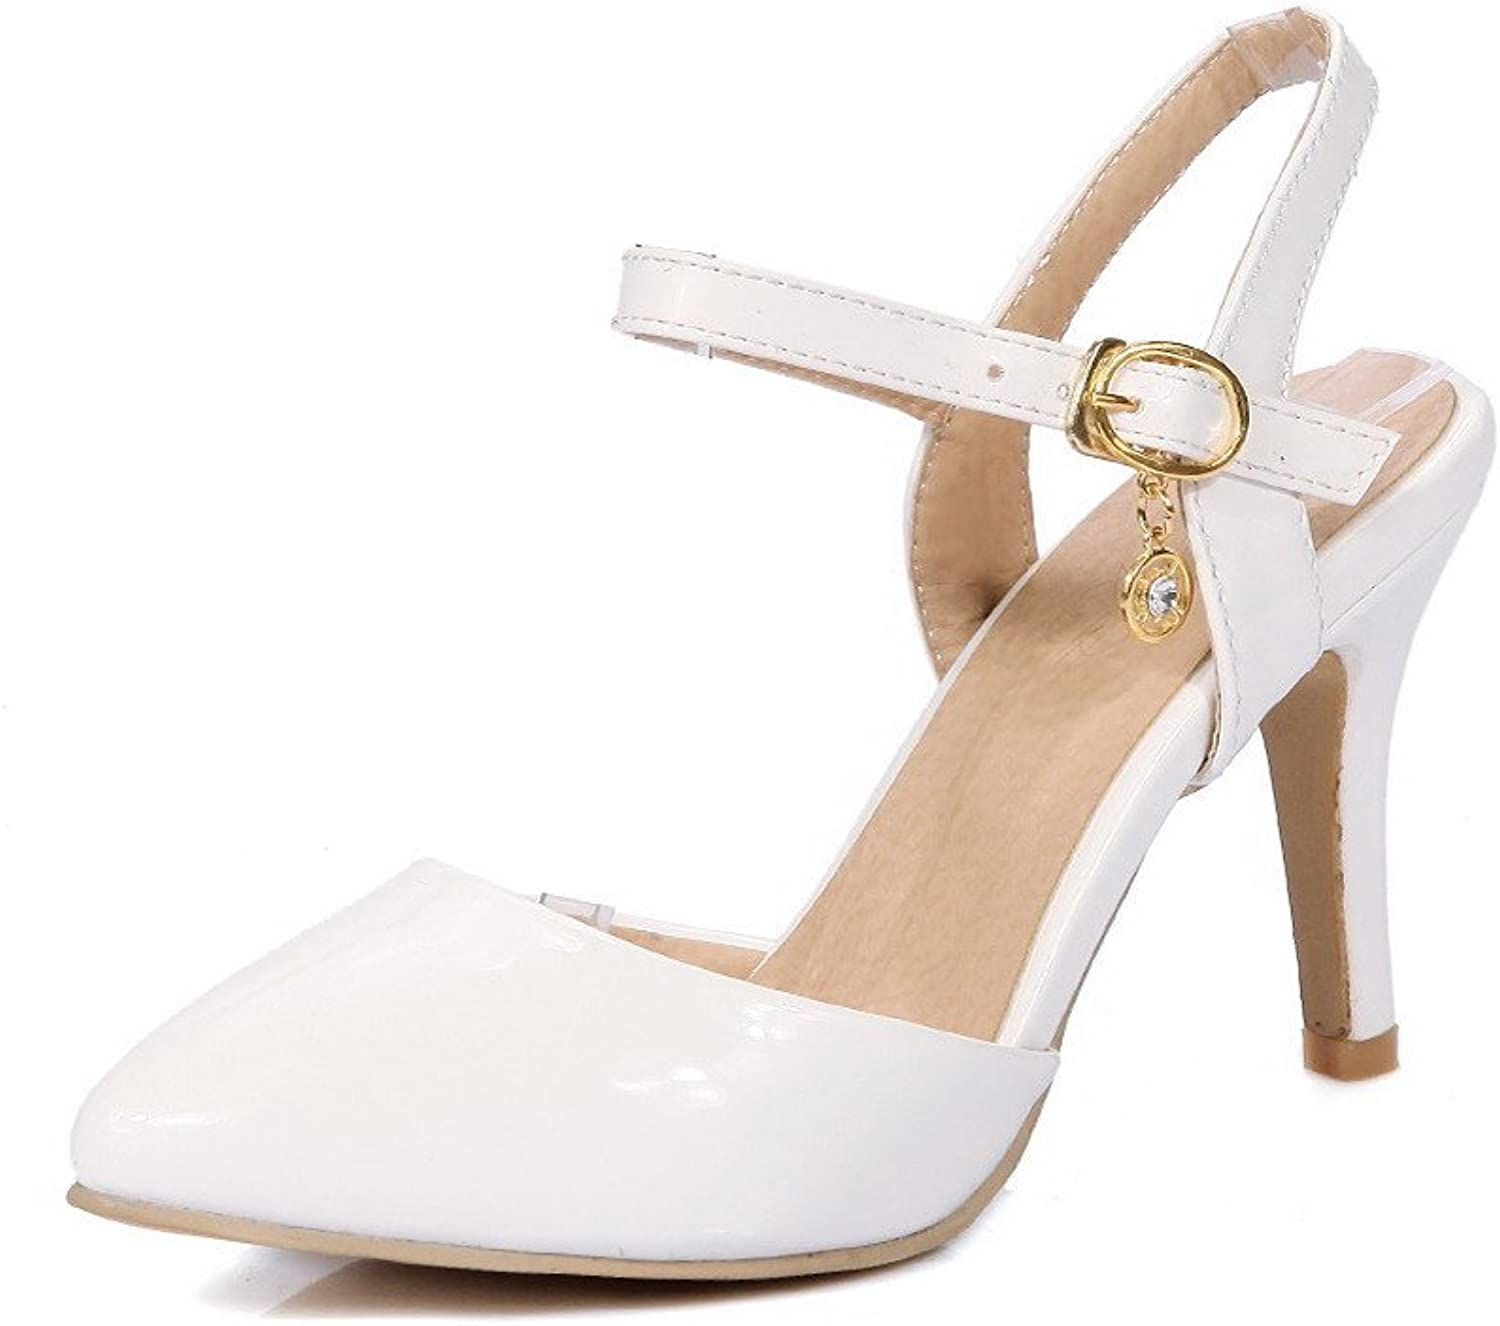 WeenFashion Women's Spikes Stilettos Patent Leather Solid Buckle Closed Toe Heeled-Sandals